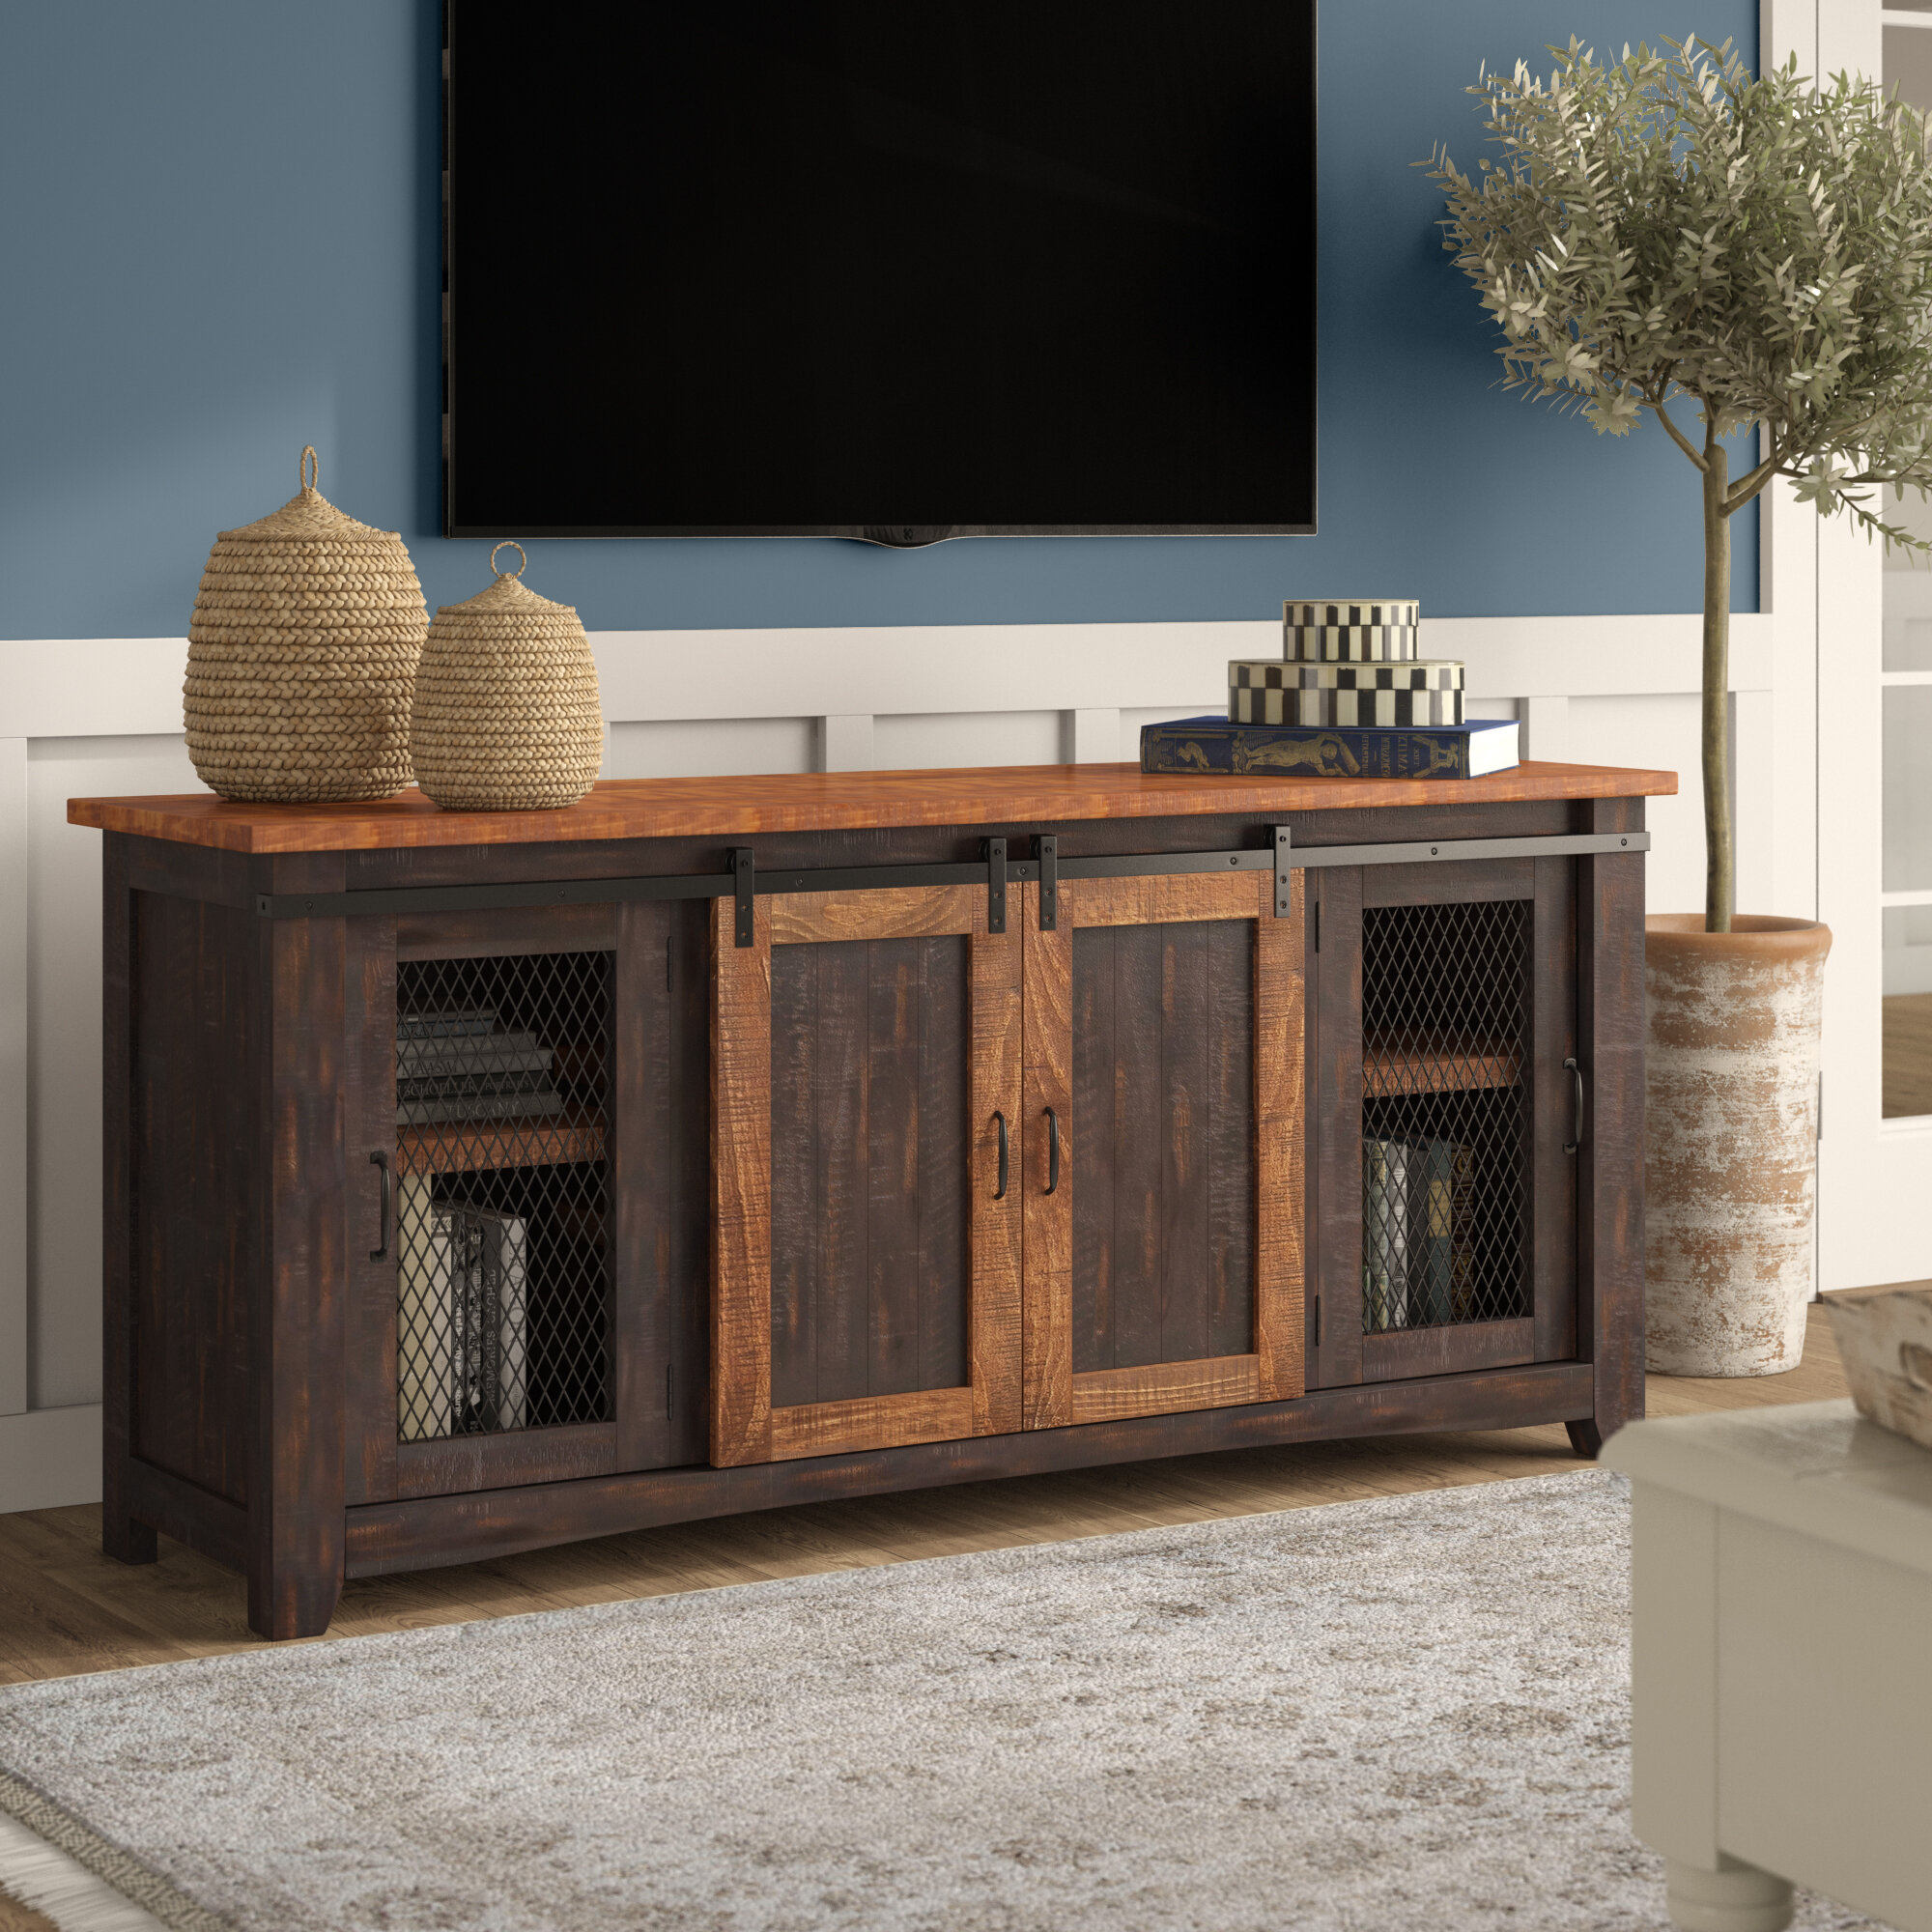 "Gracie Oaks Belen Tv Stand For Tvs Up To 70"" with Colefax Vintage Tv Stands for Tvs Up to 78"" (Image 24 of 30)"